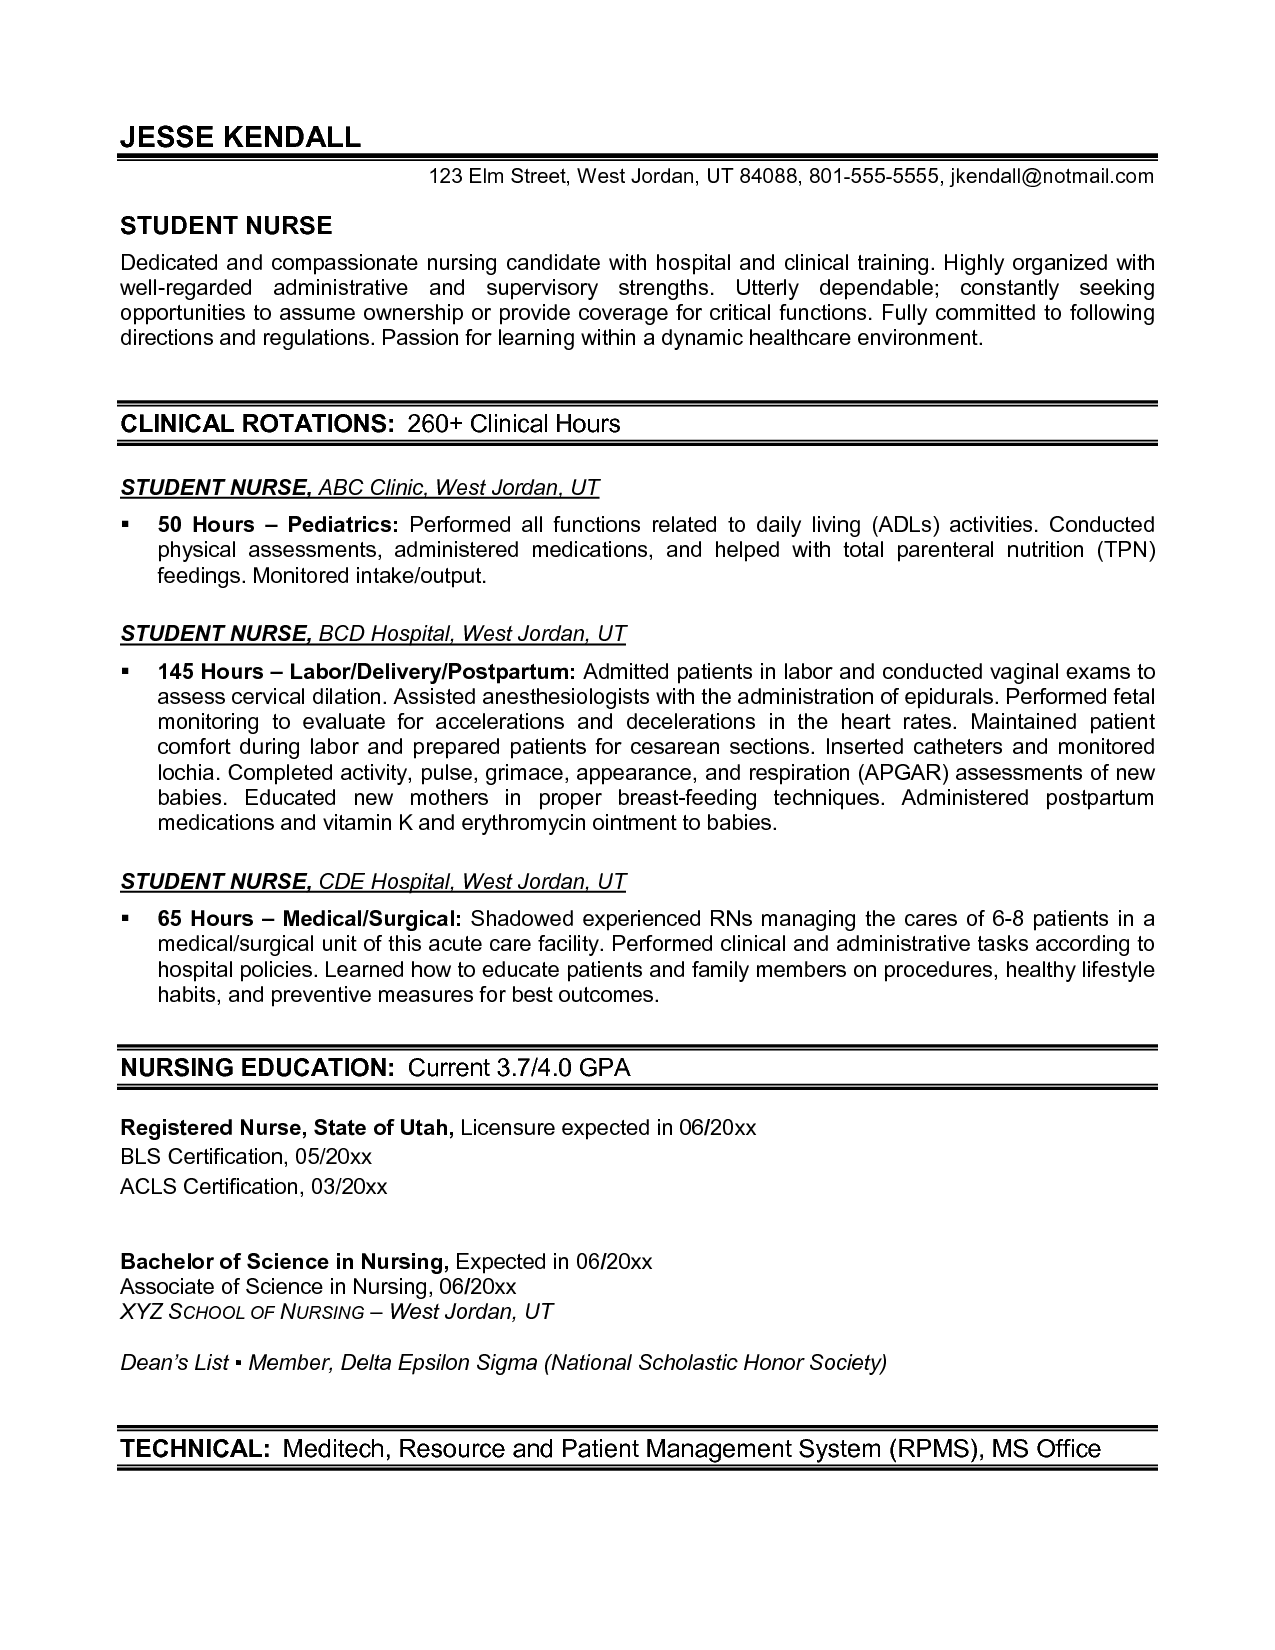 resume template rn - Daway.dabrowa.co